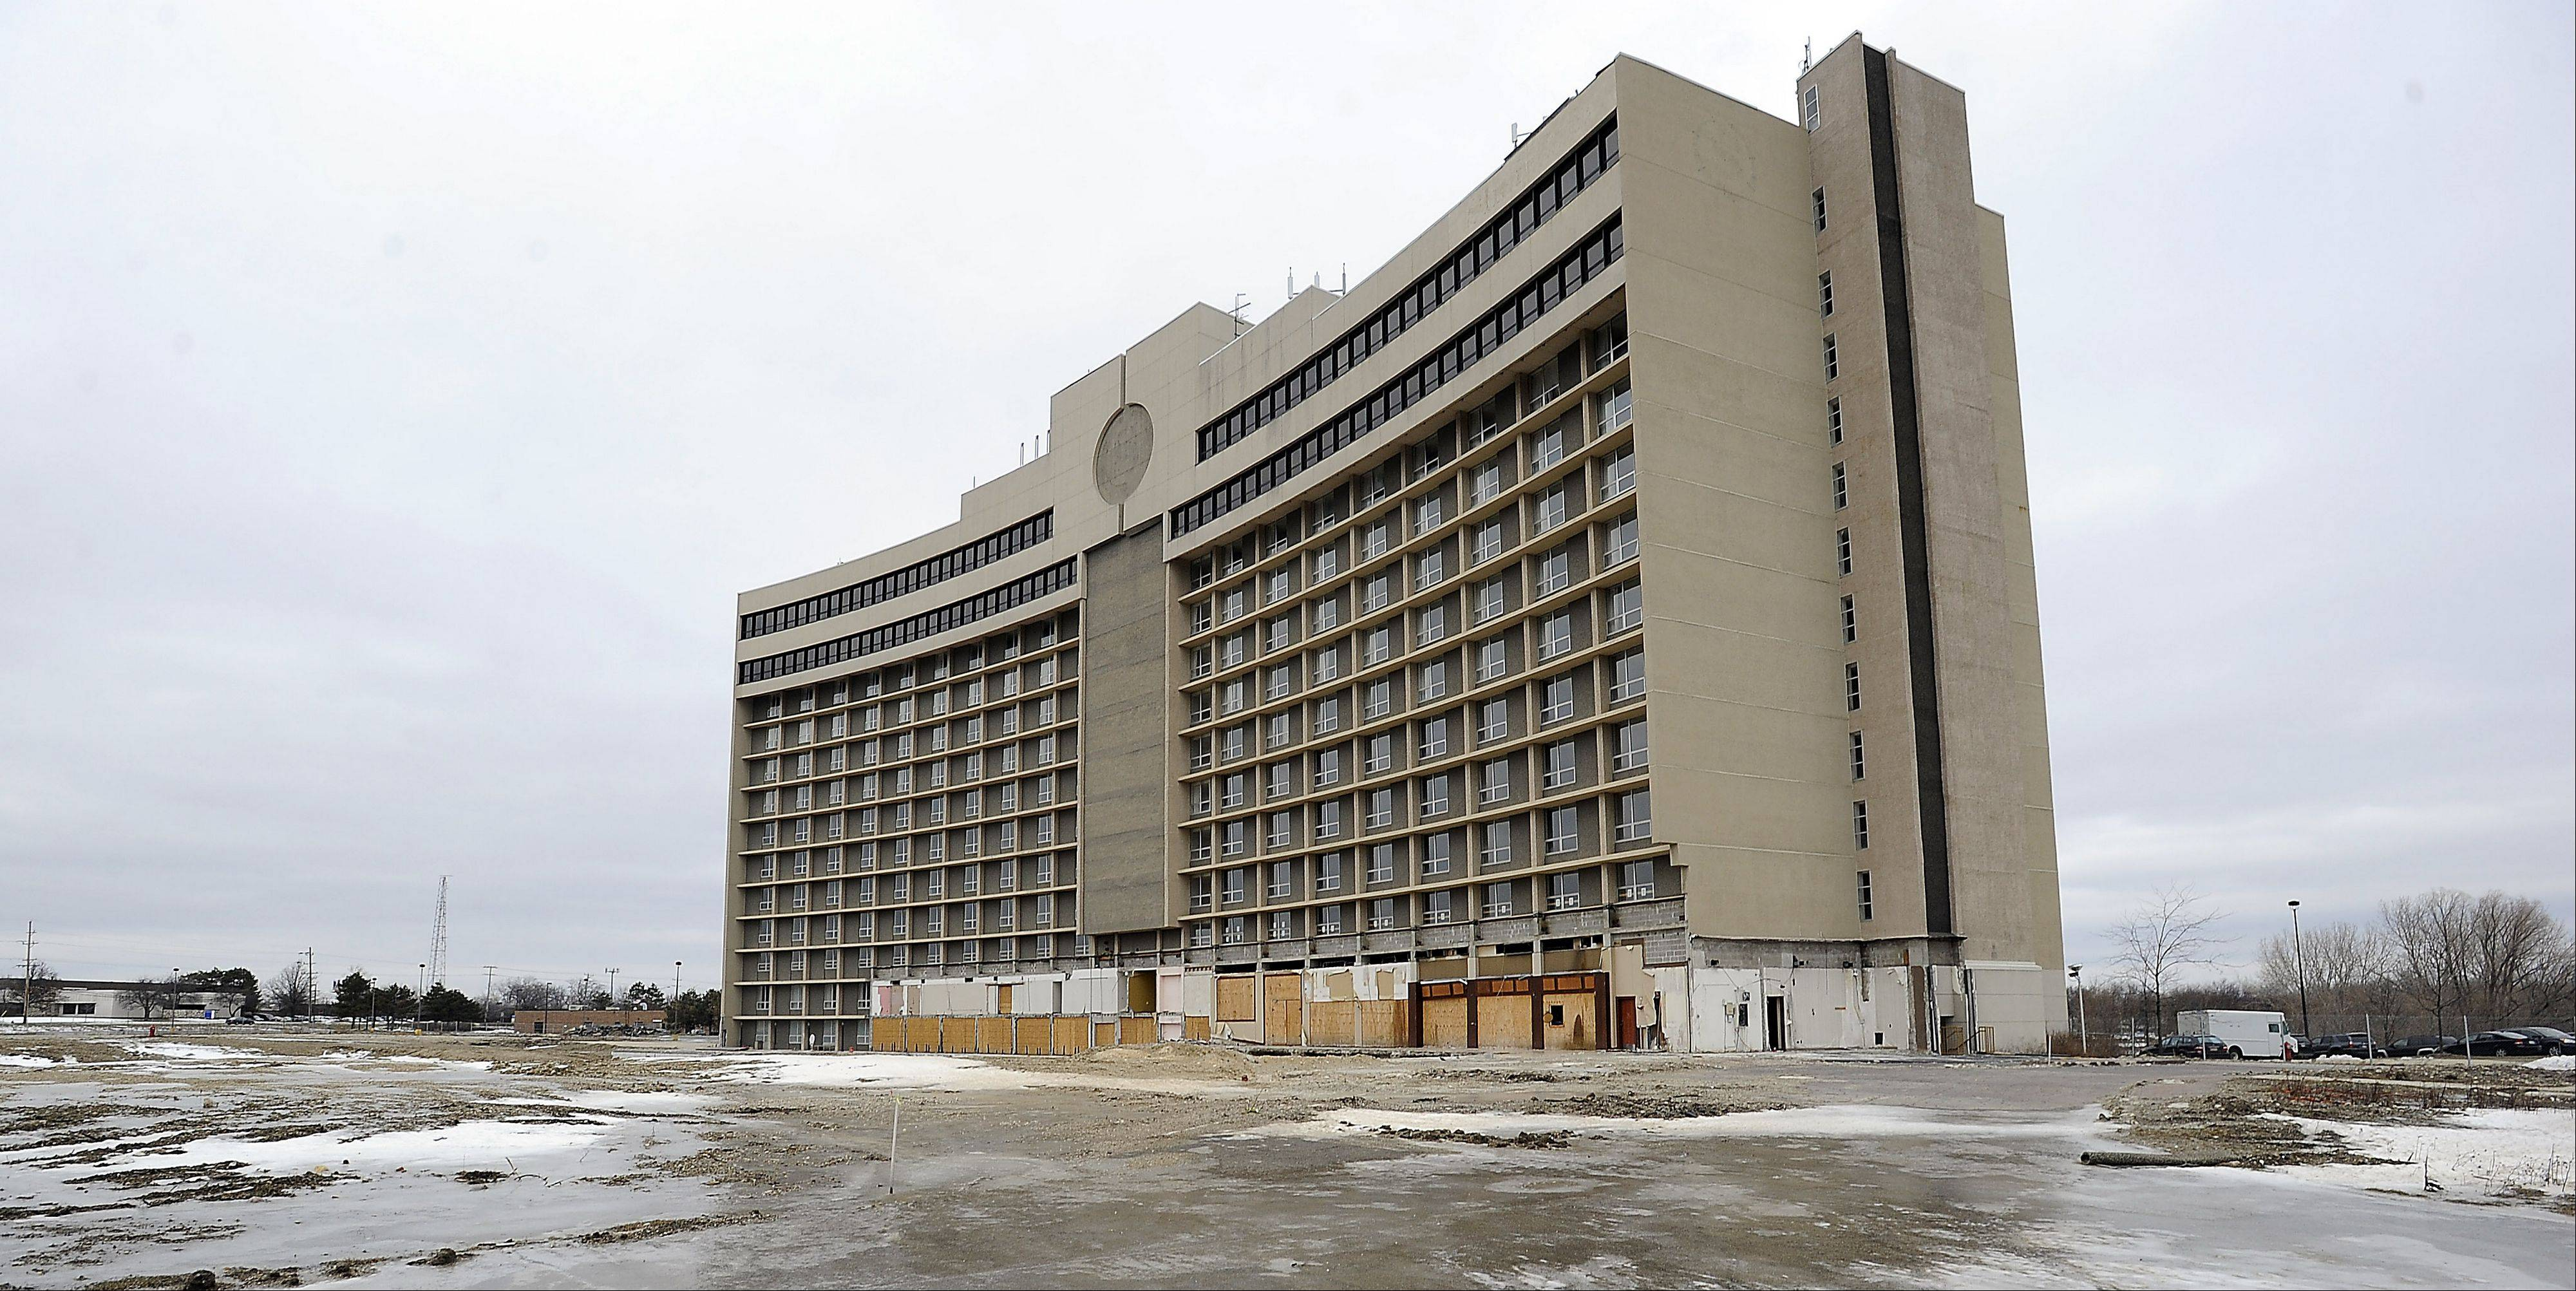 Construction of phase one of the Arlington Downs project in the former Sheraton hotel near Arlington Park should get under way shortly, its developers say. The project is expected to include 214 apartments, a small hotel and water park, and retail and dining elements.